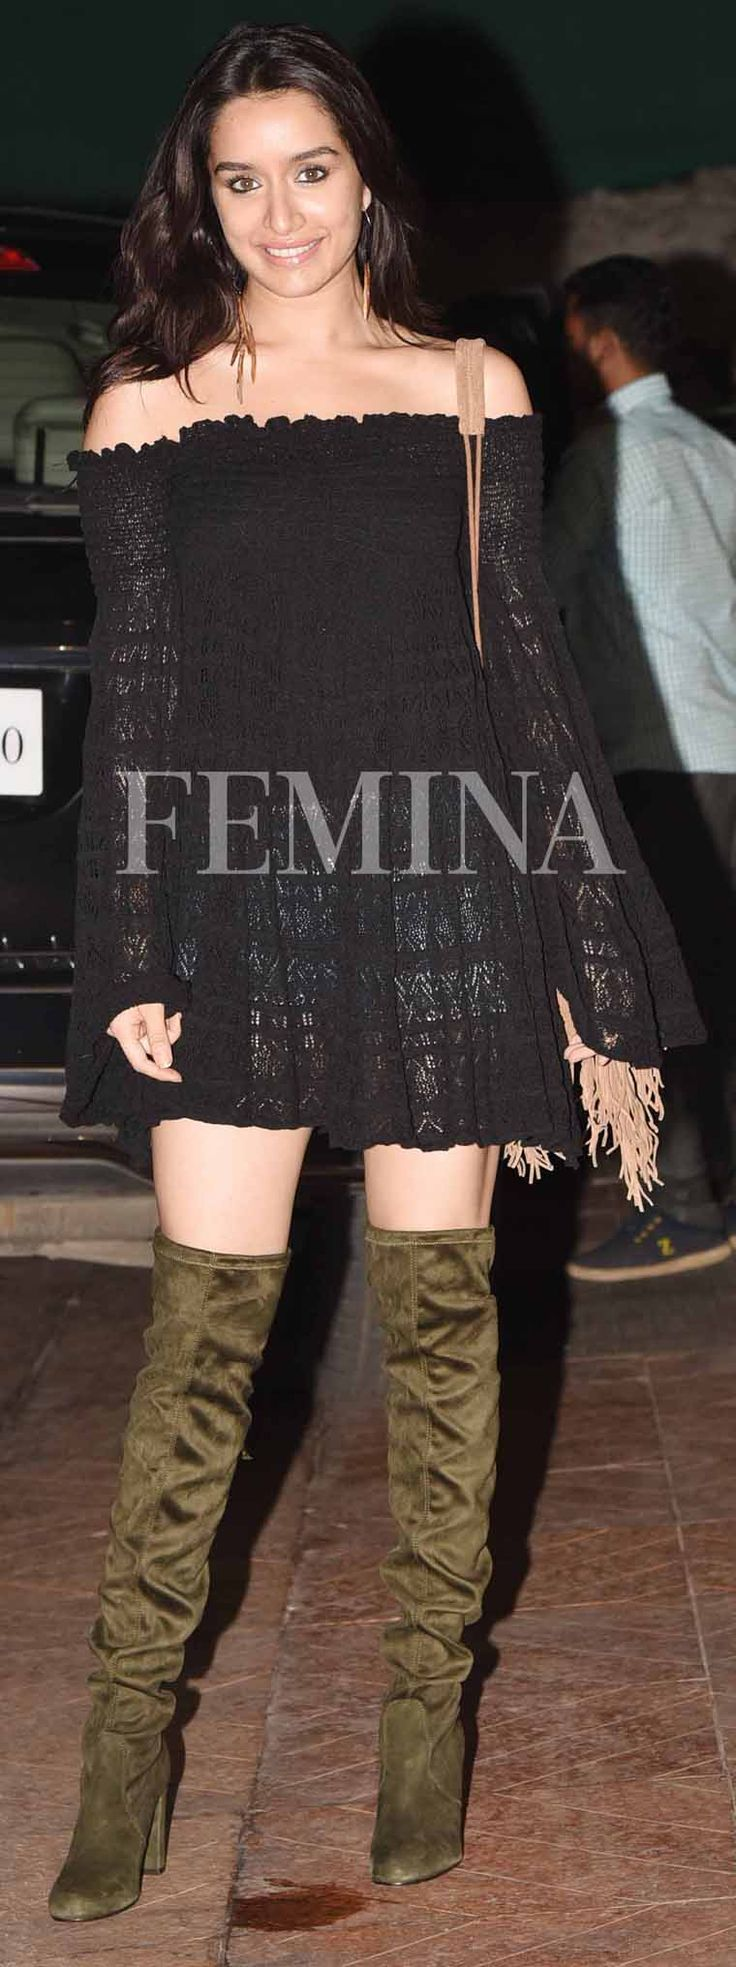 '10 Best Dresses From Bollywood ACtor #Shraddha_Kapoor's Closet' Shraddha-Kapoor-lace-dress-denim-shorts-thigh-high-boots via @topupyourtrip